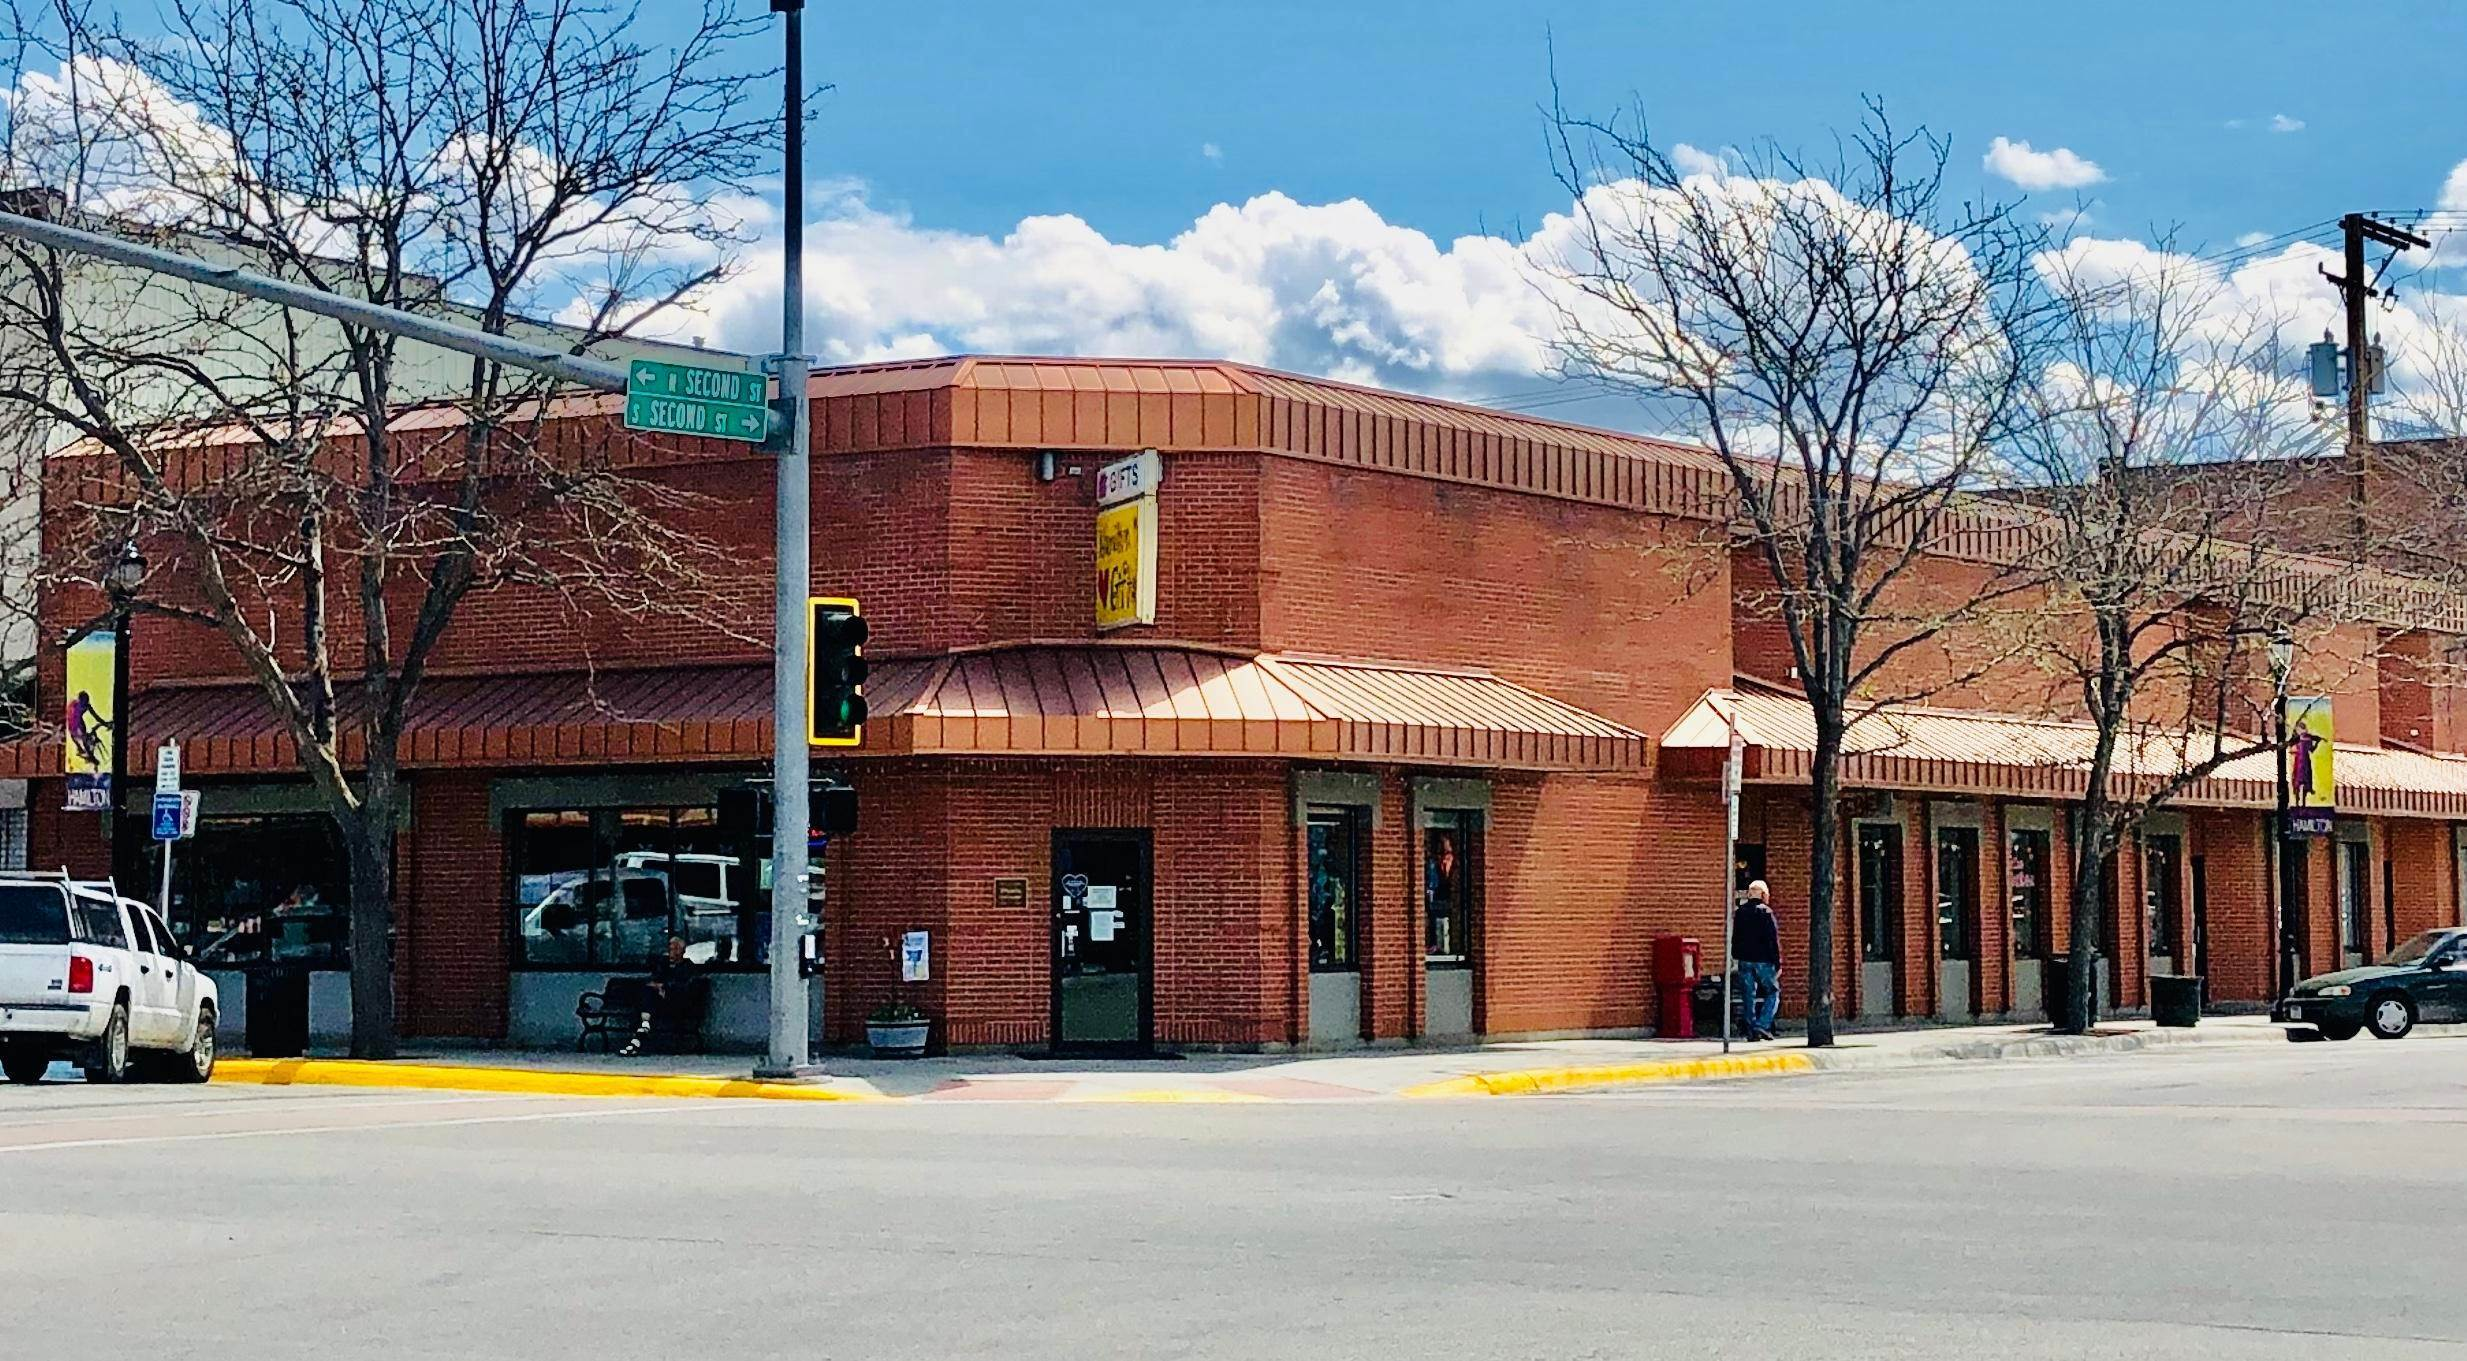 Commercial for Sale at 135 West Main Street Hamilton, Montana 59840 United States